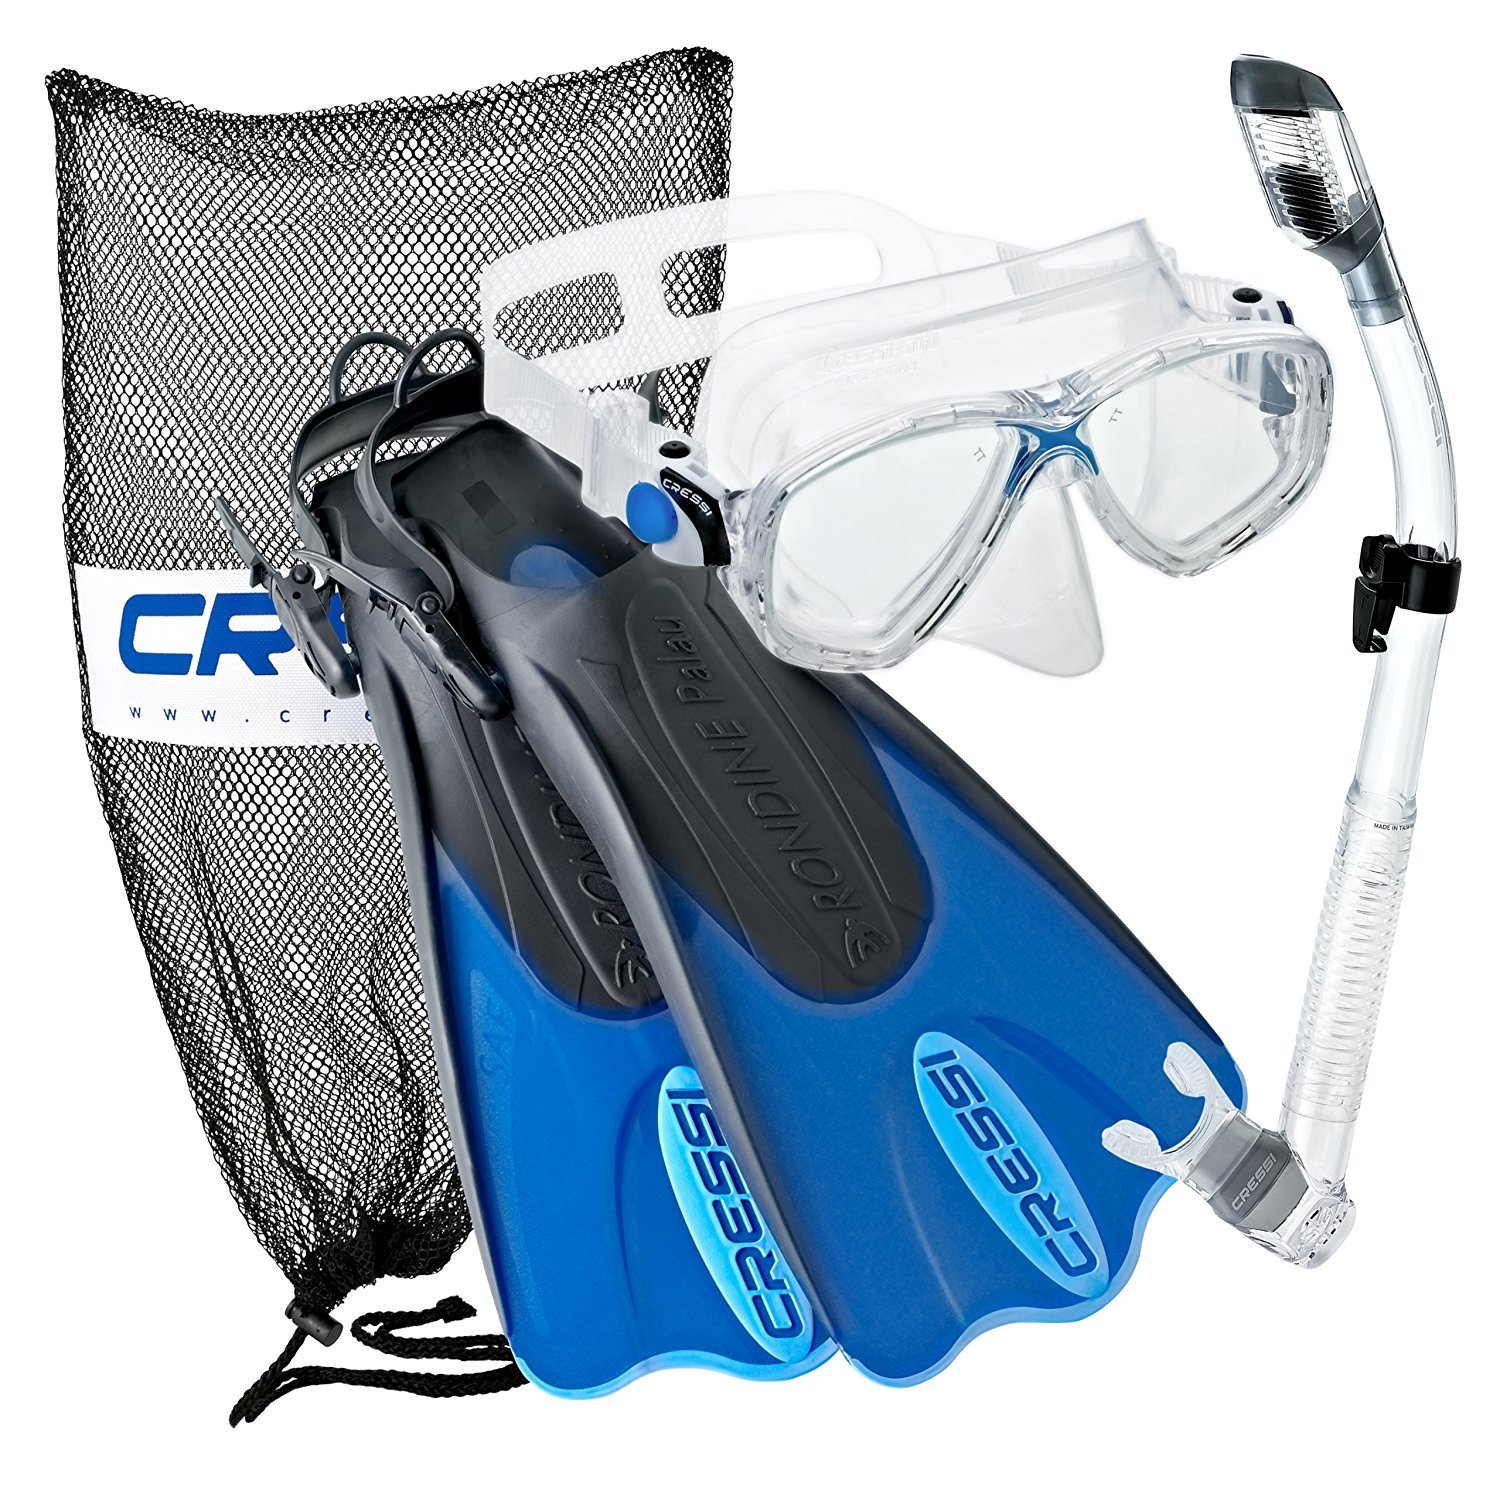 Cressi Palau Mask Fin Snorkel Set with Snorkeling Gear Bag, Blue, M/L | (Men's 7-10) (Women's 8-11) by Cressi